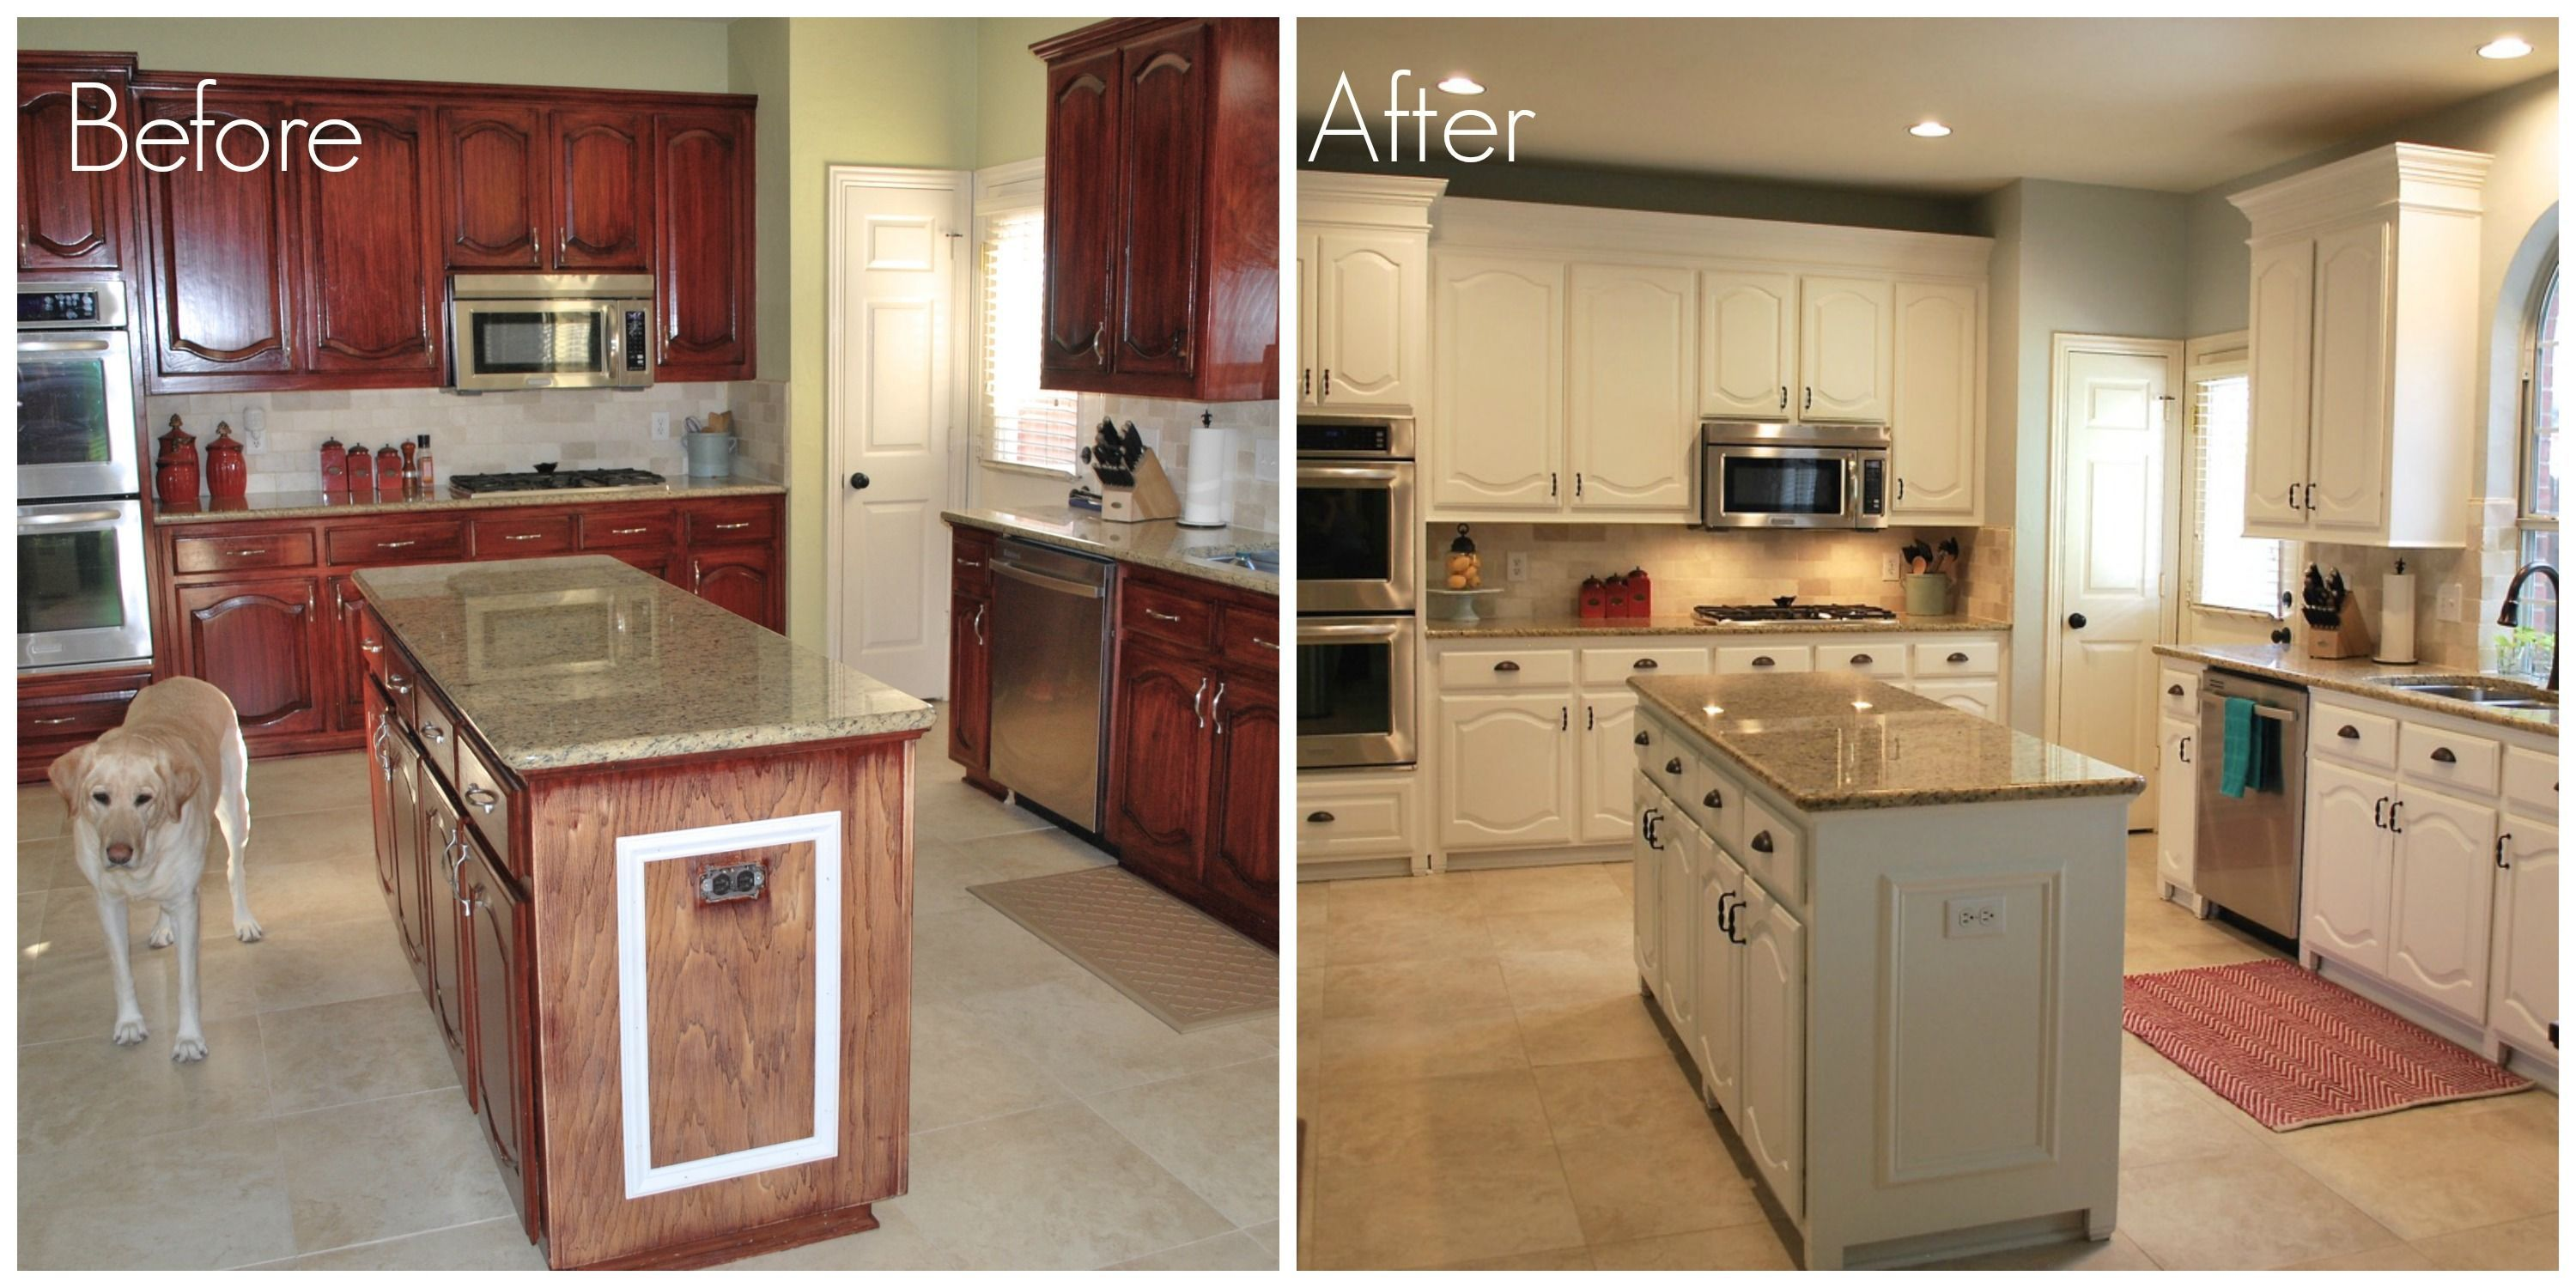 Before After Kitchen Remodel Pinterest Painting Cabine In 2020 Shabby Chic Kitchen Cabinets Diy Shabby Chic Kitchen Cabinets Kitchen Cabinet Styles